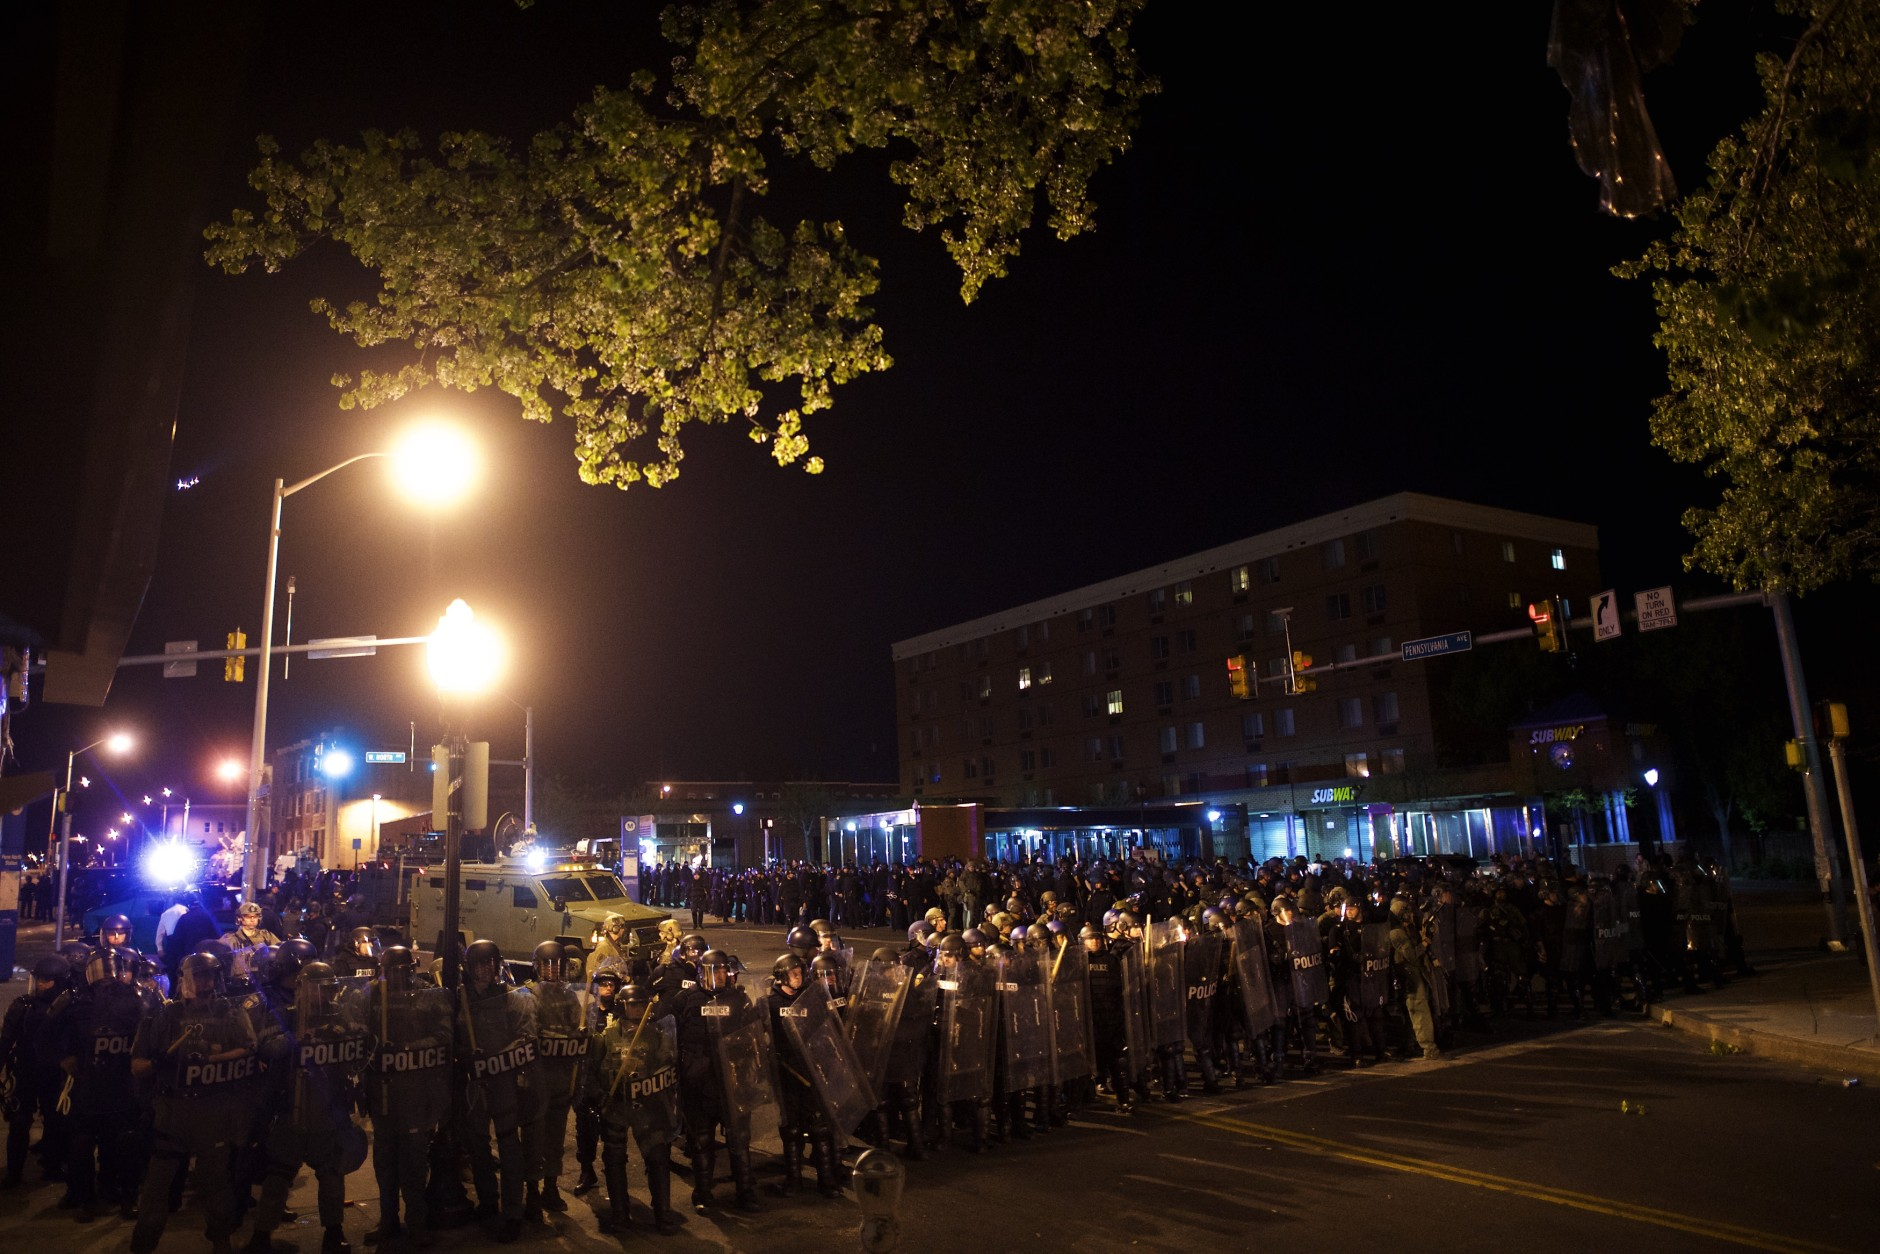 BALTIMORE, MD - APRIL 28:  Riot police line the street after curfew and dispensing tear gas the night following citywide riots over the death of Freddie Gray on April 28, 2015 in Baltimore, Maryland. Freddie Gray, 25, was arrested for possessing a switch blade knife April 12 outside the Gilmor Houses housing project on Baltimore's west side. According to his attorney, Gray died a week later in the hospital from a severe spinal cord injury he received while in police custody. (Photo by Mark Makela/Getty Images)